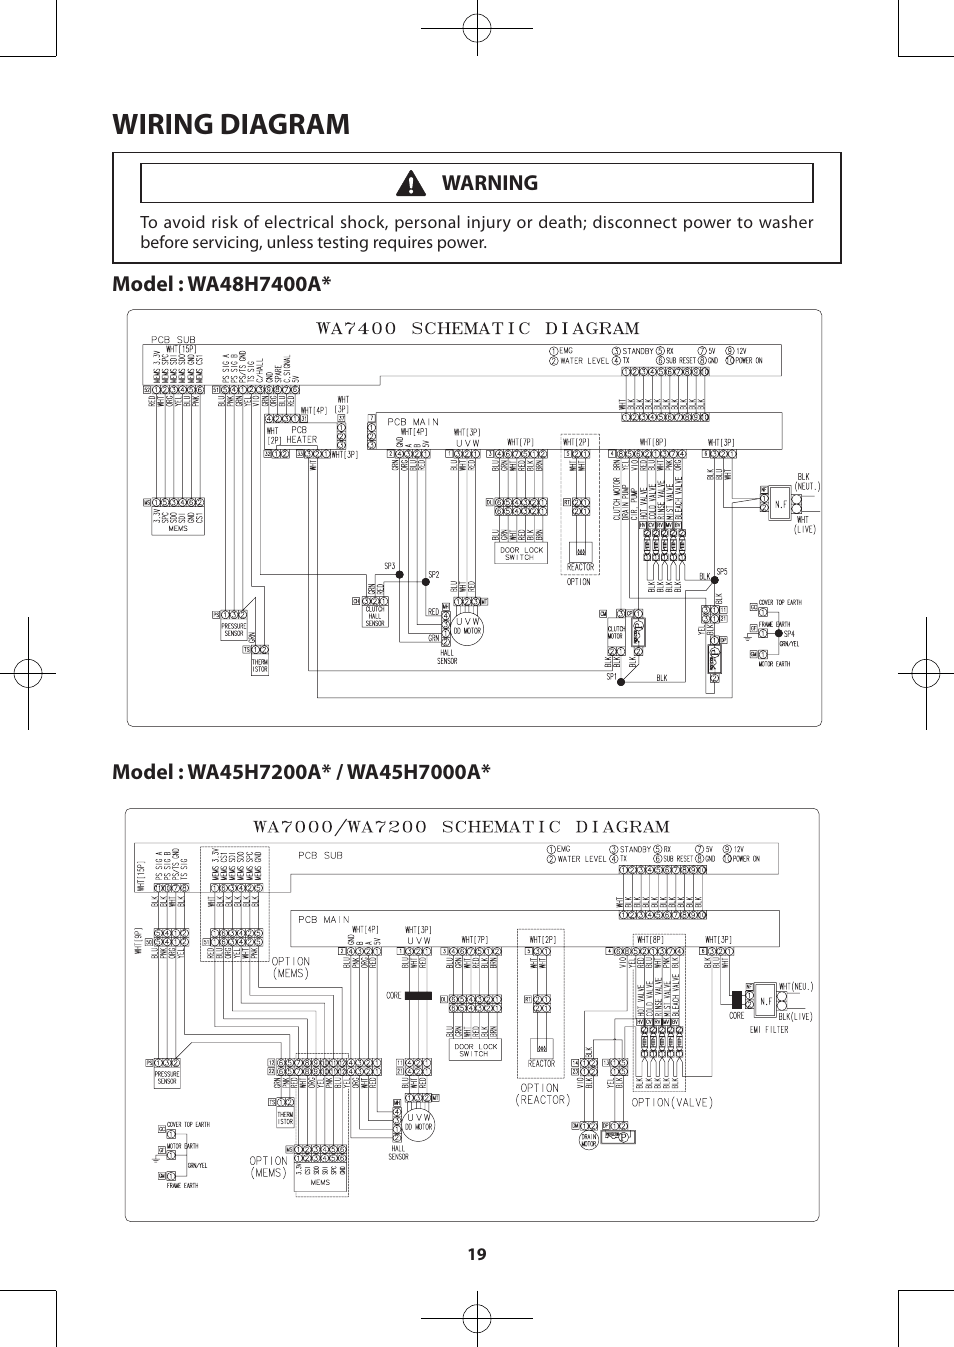 medium resolution of wiring diagram samsung wa48h7400aw a2 user manual page 19 60 a2 wiring diagram a2 wiring diagram